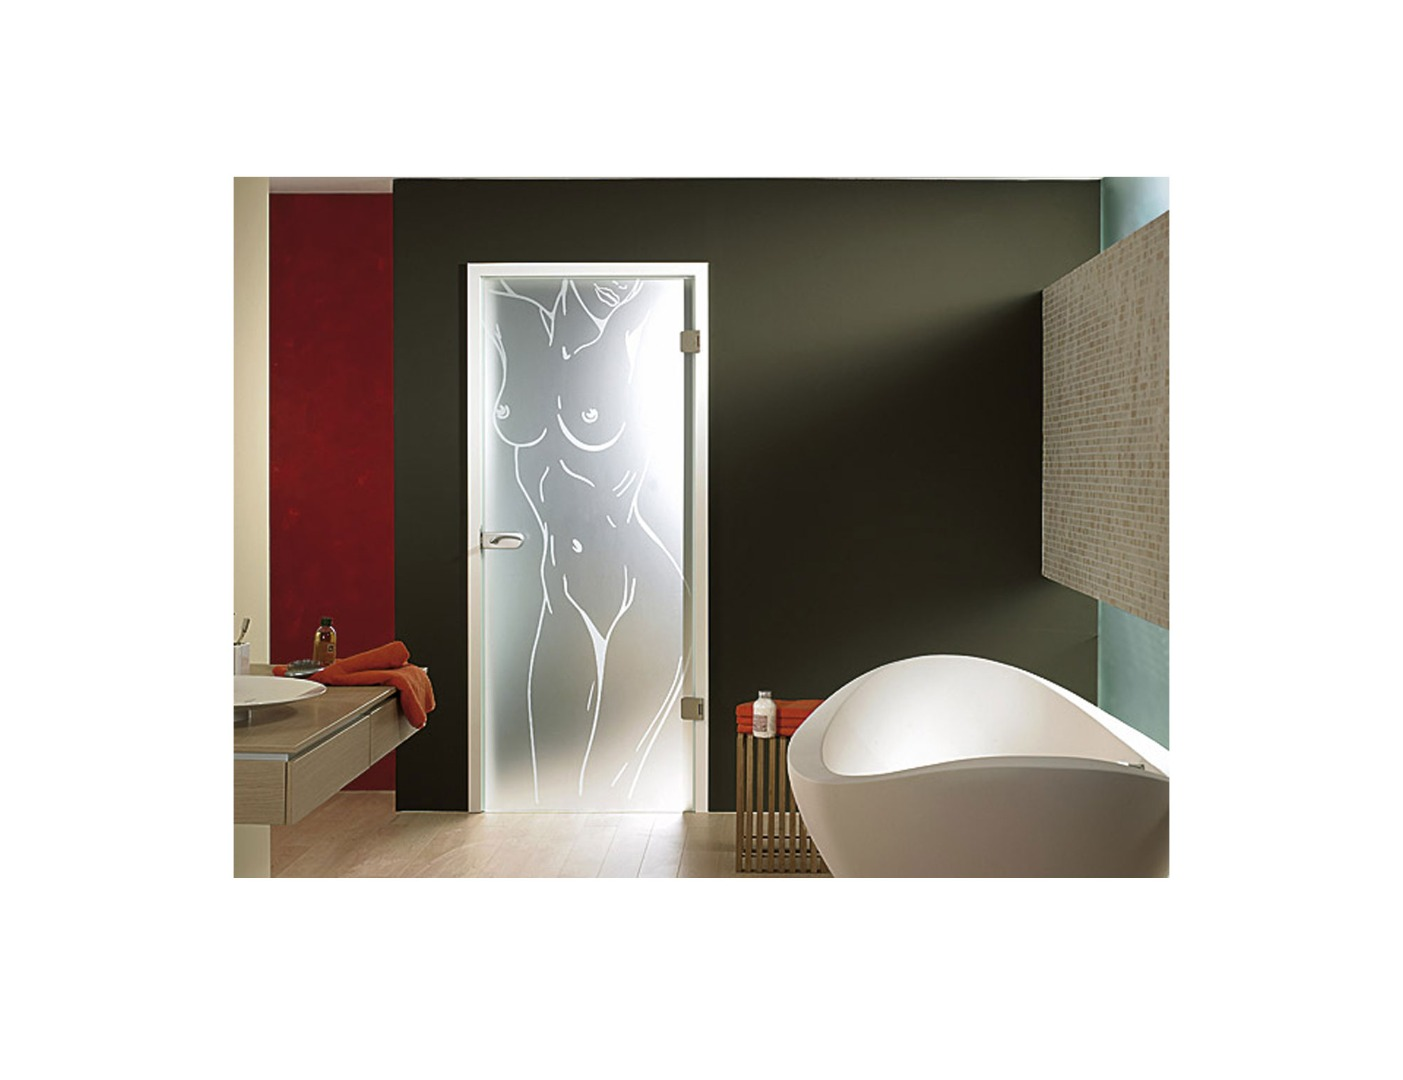 frosted ideas luxurious home glass interior with decor on bathroom door